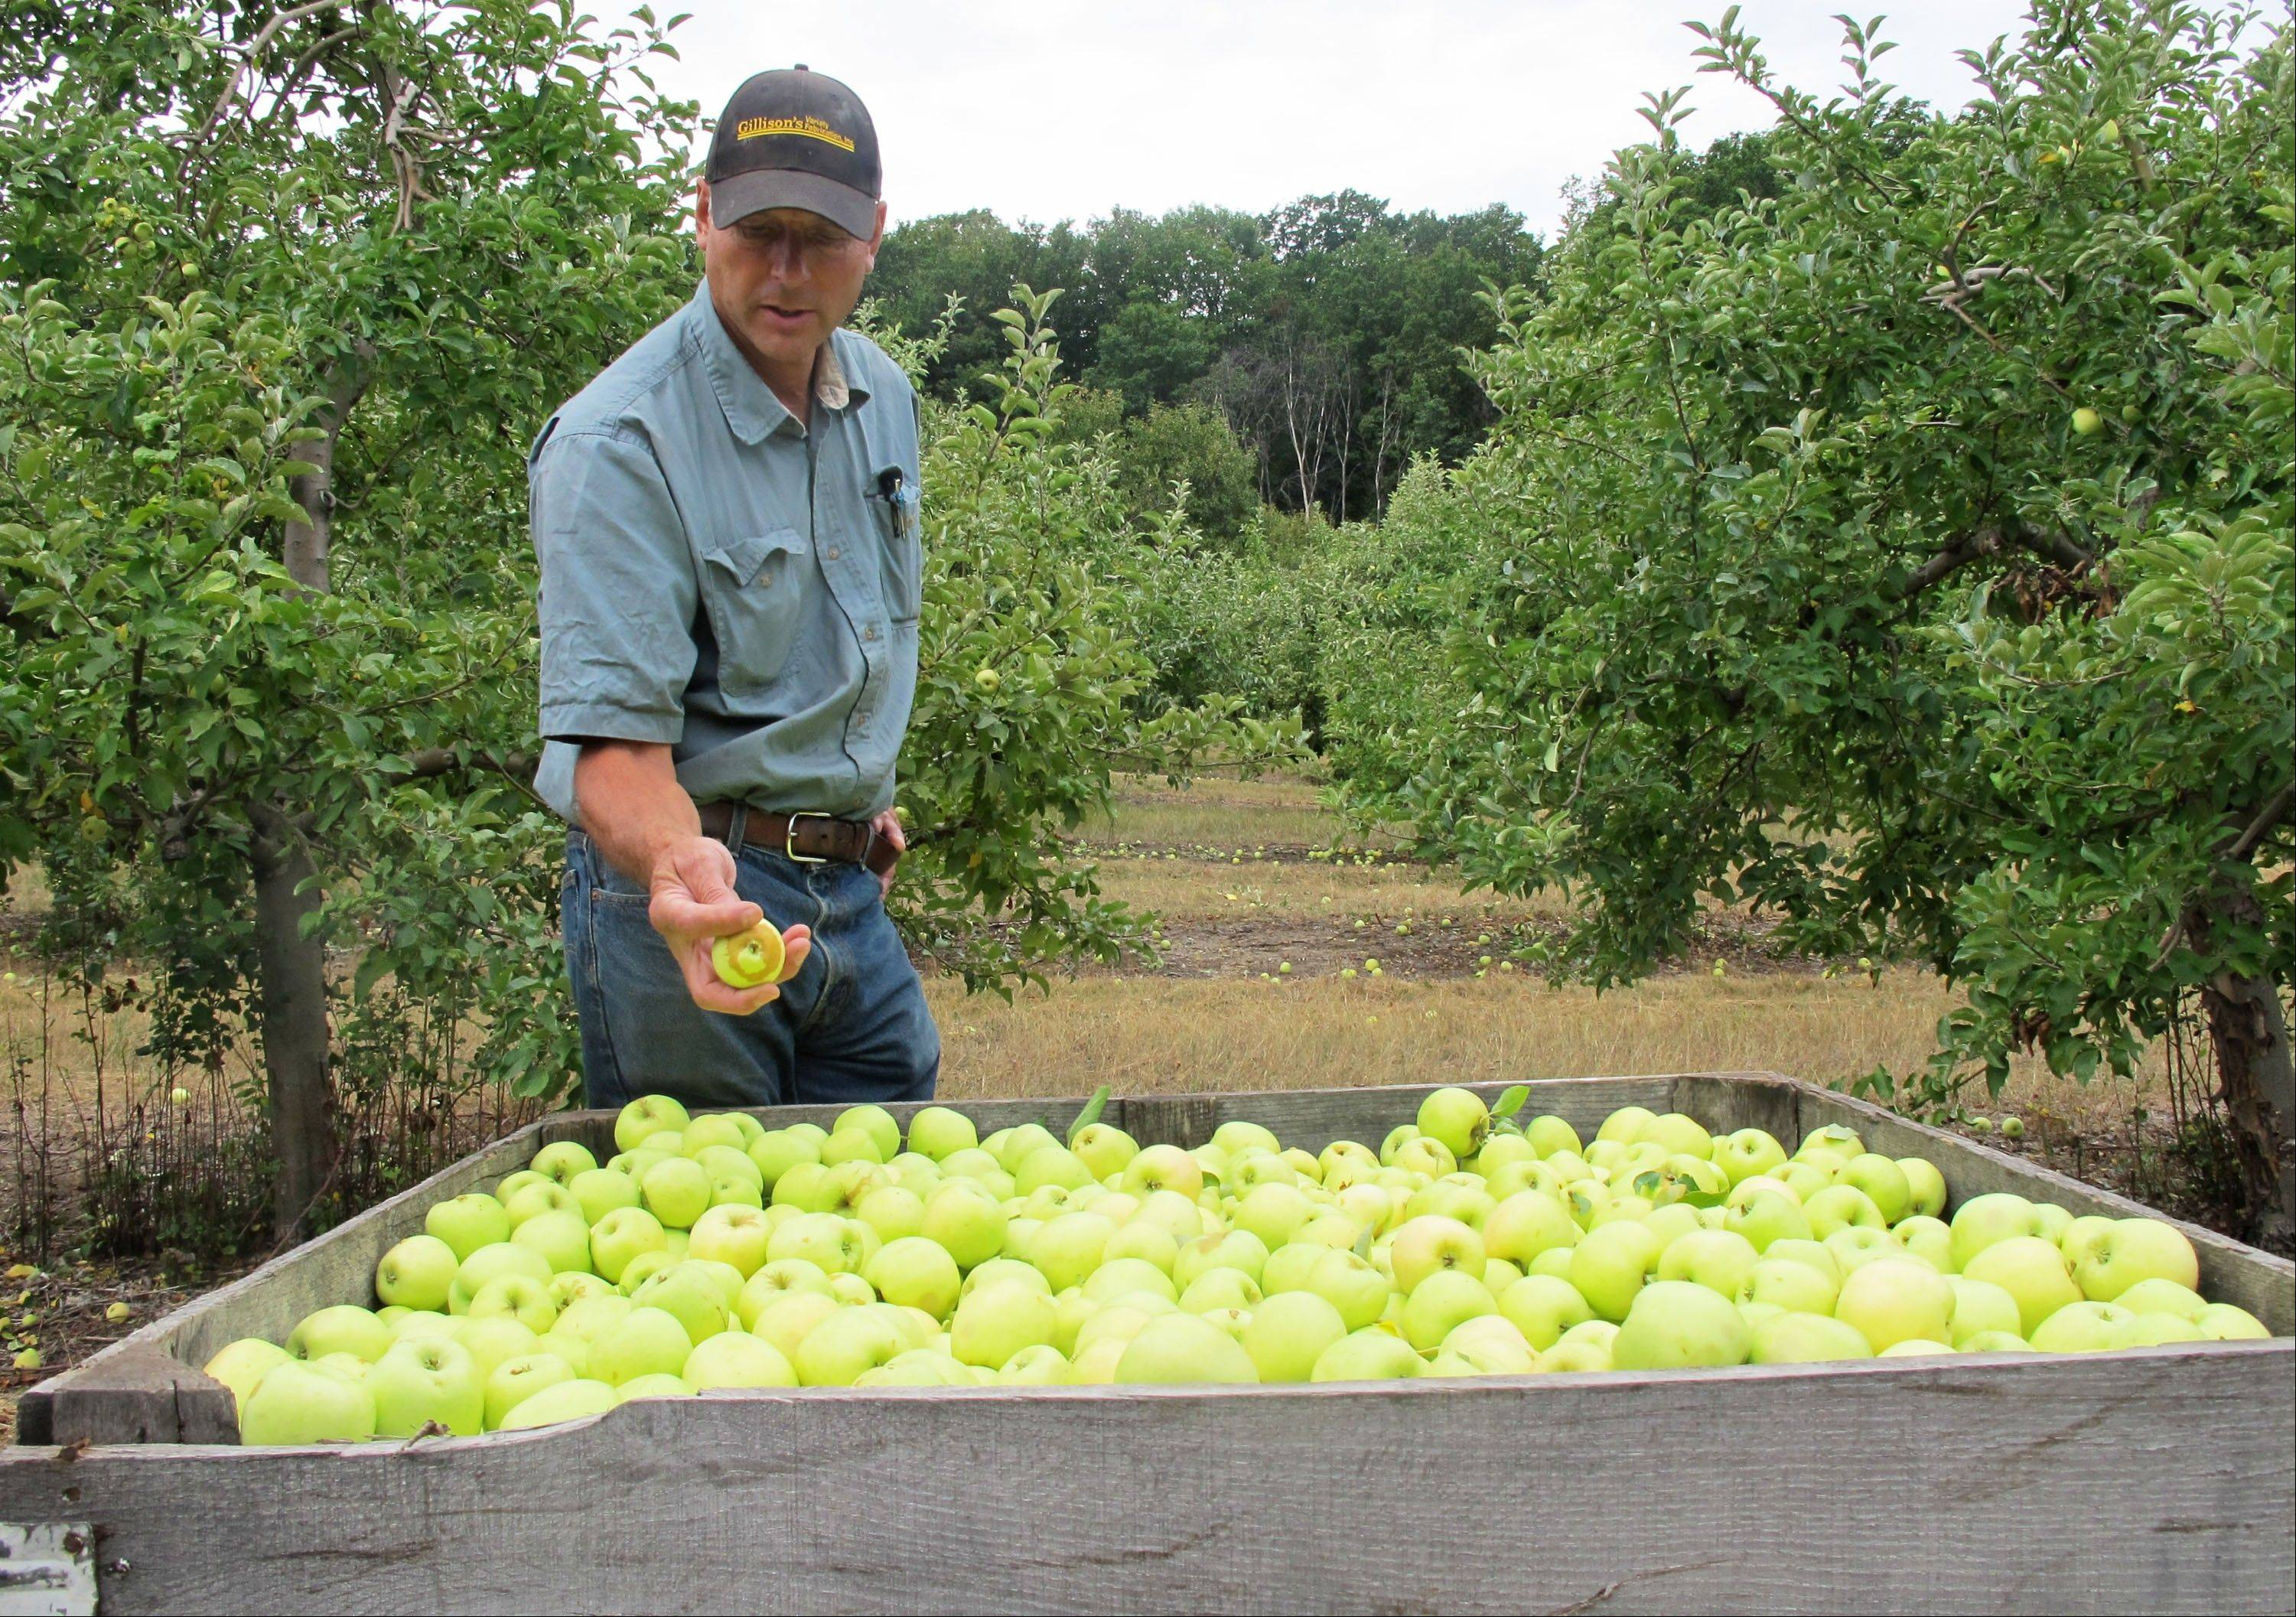 Grower Alan Spinniken examines a bin filled with Early Gold apples in his orchard near Suttons Bay, Mich. Spinniken lost about one-third of his crop because of bad weather but said heís grateful things werenít worse.